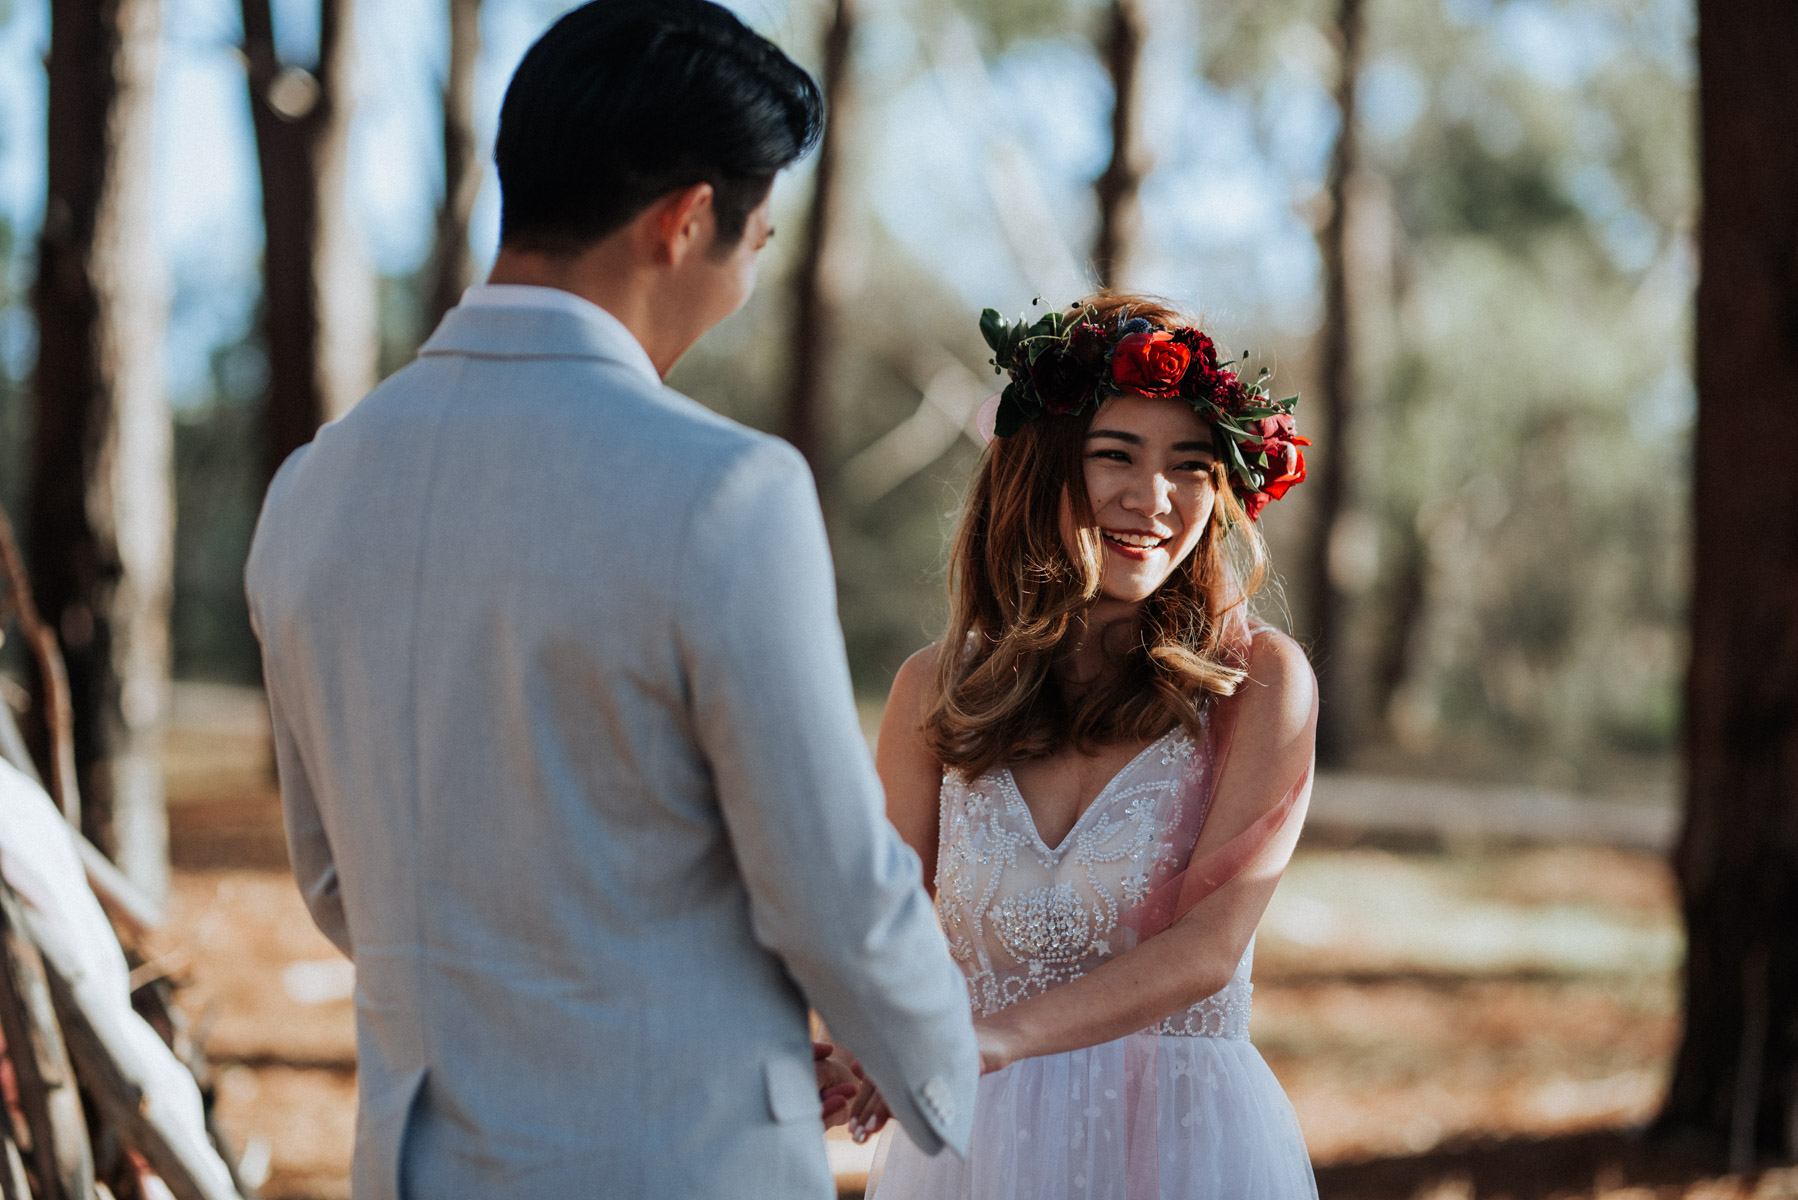 james-julene-forest-elopement-perth-10.JPG